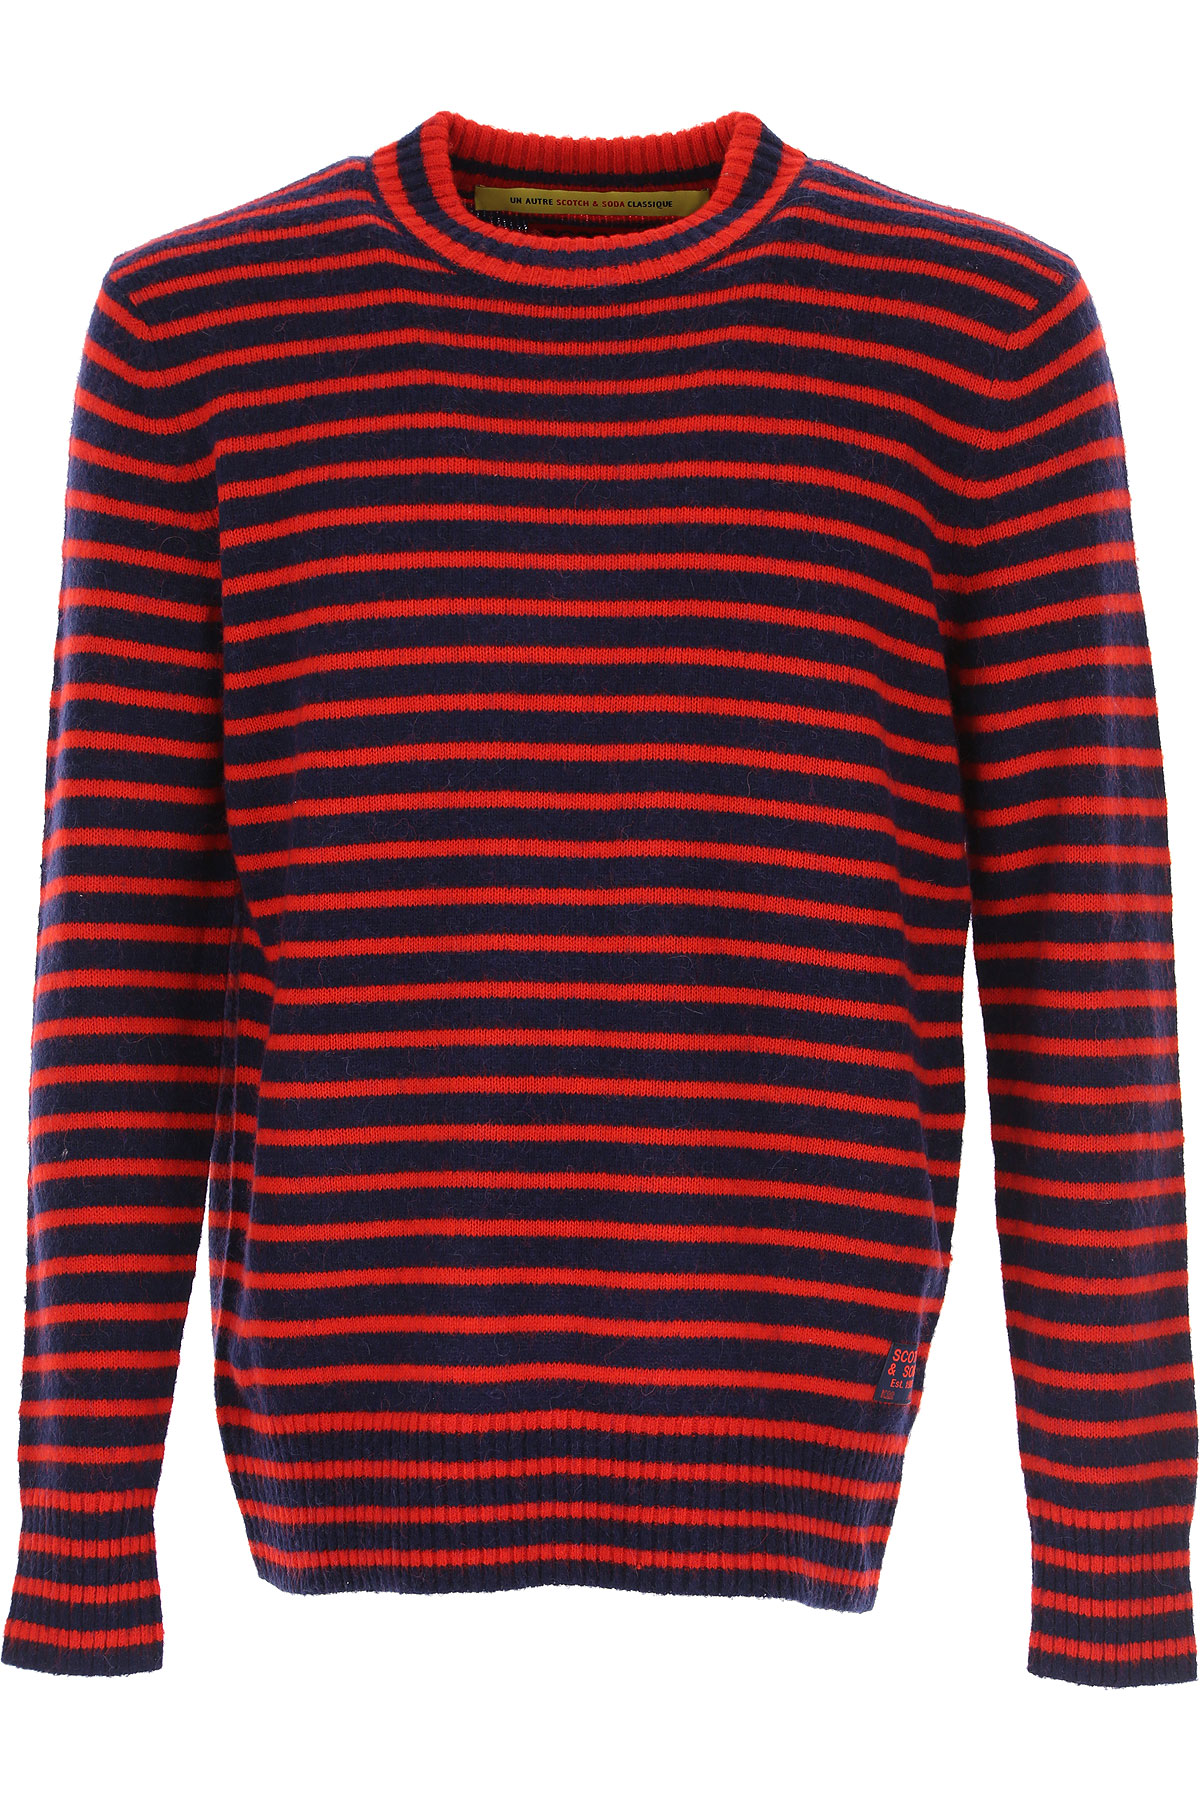 Scotch & Soda Sweater for Men Jumper On Sale, Red, Acrylic, 2019, L M S XL